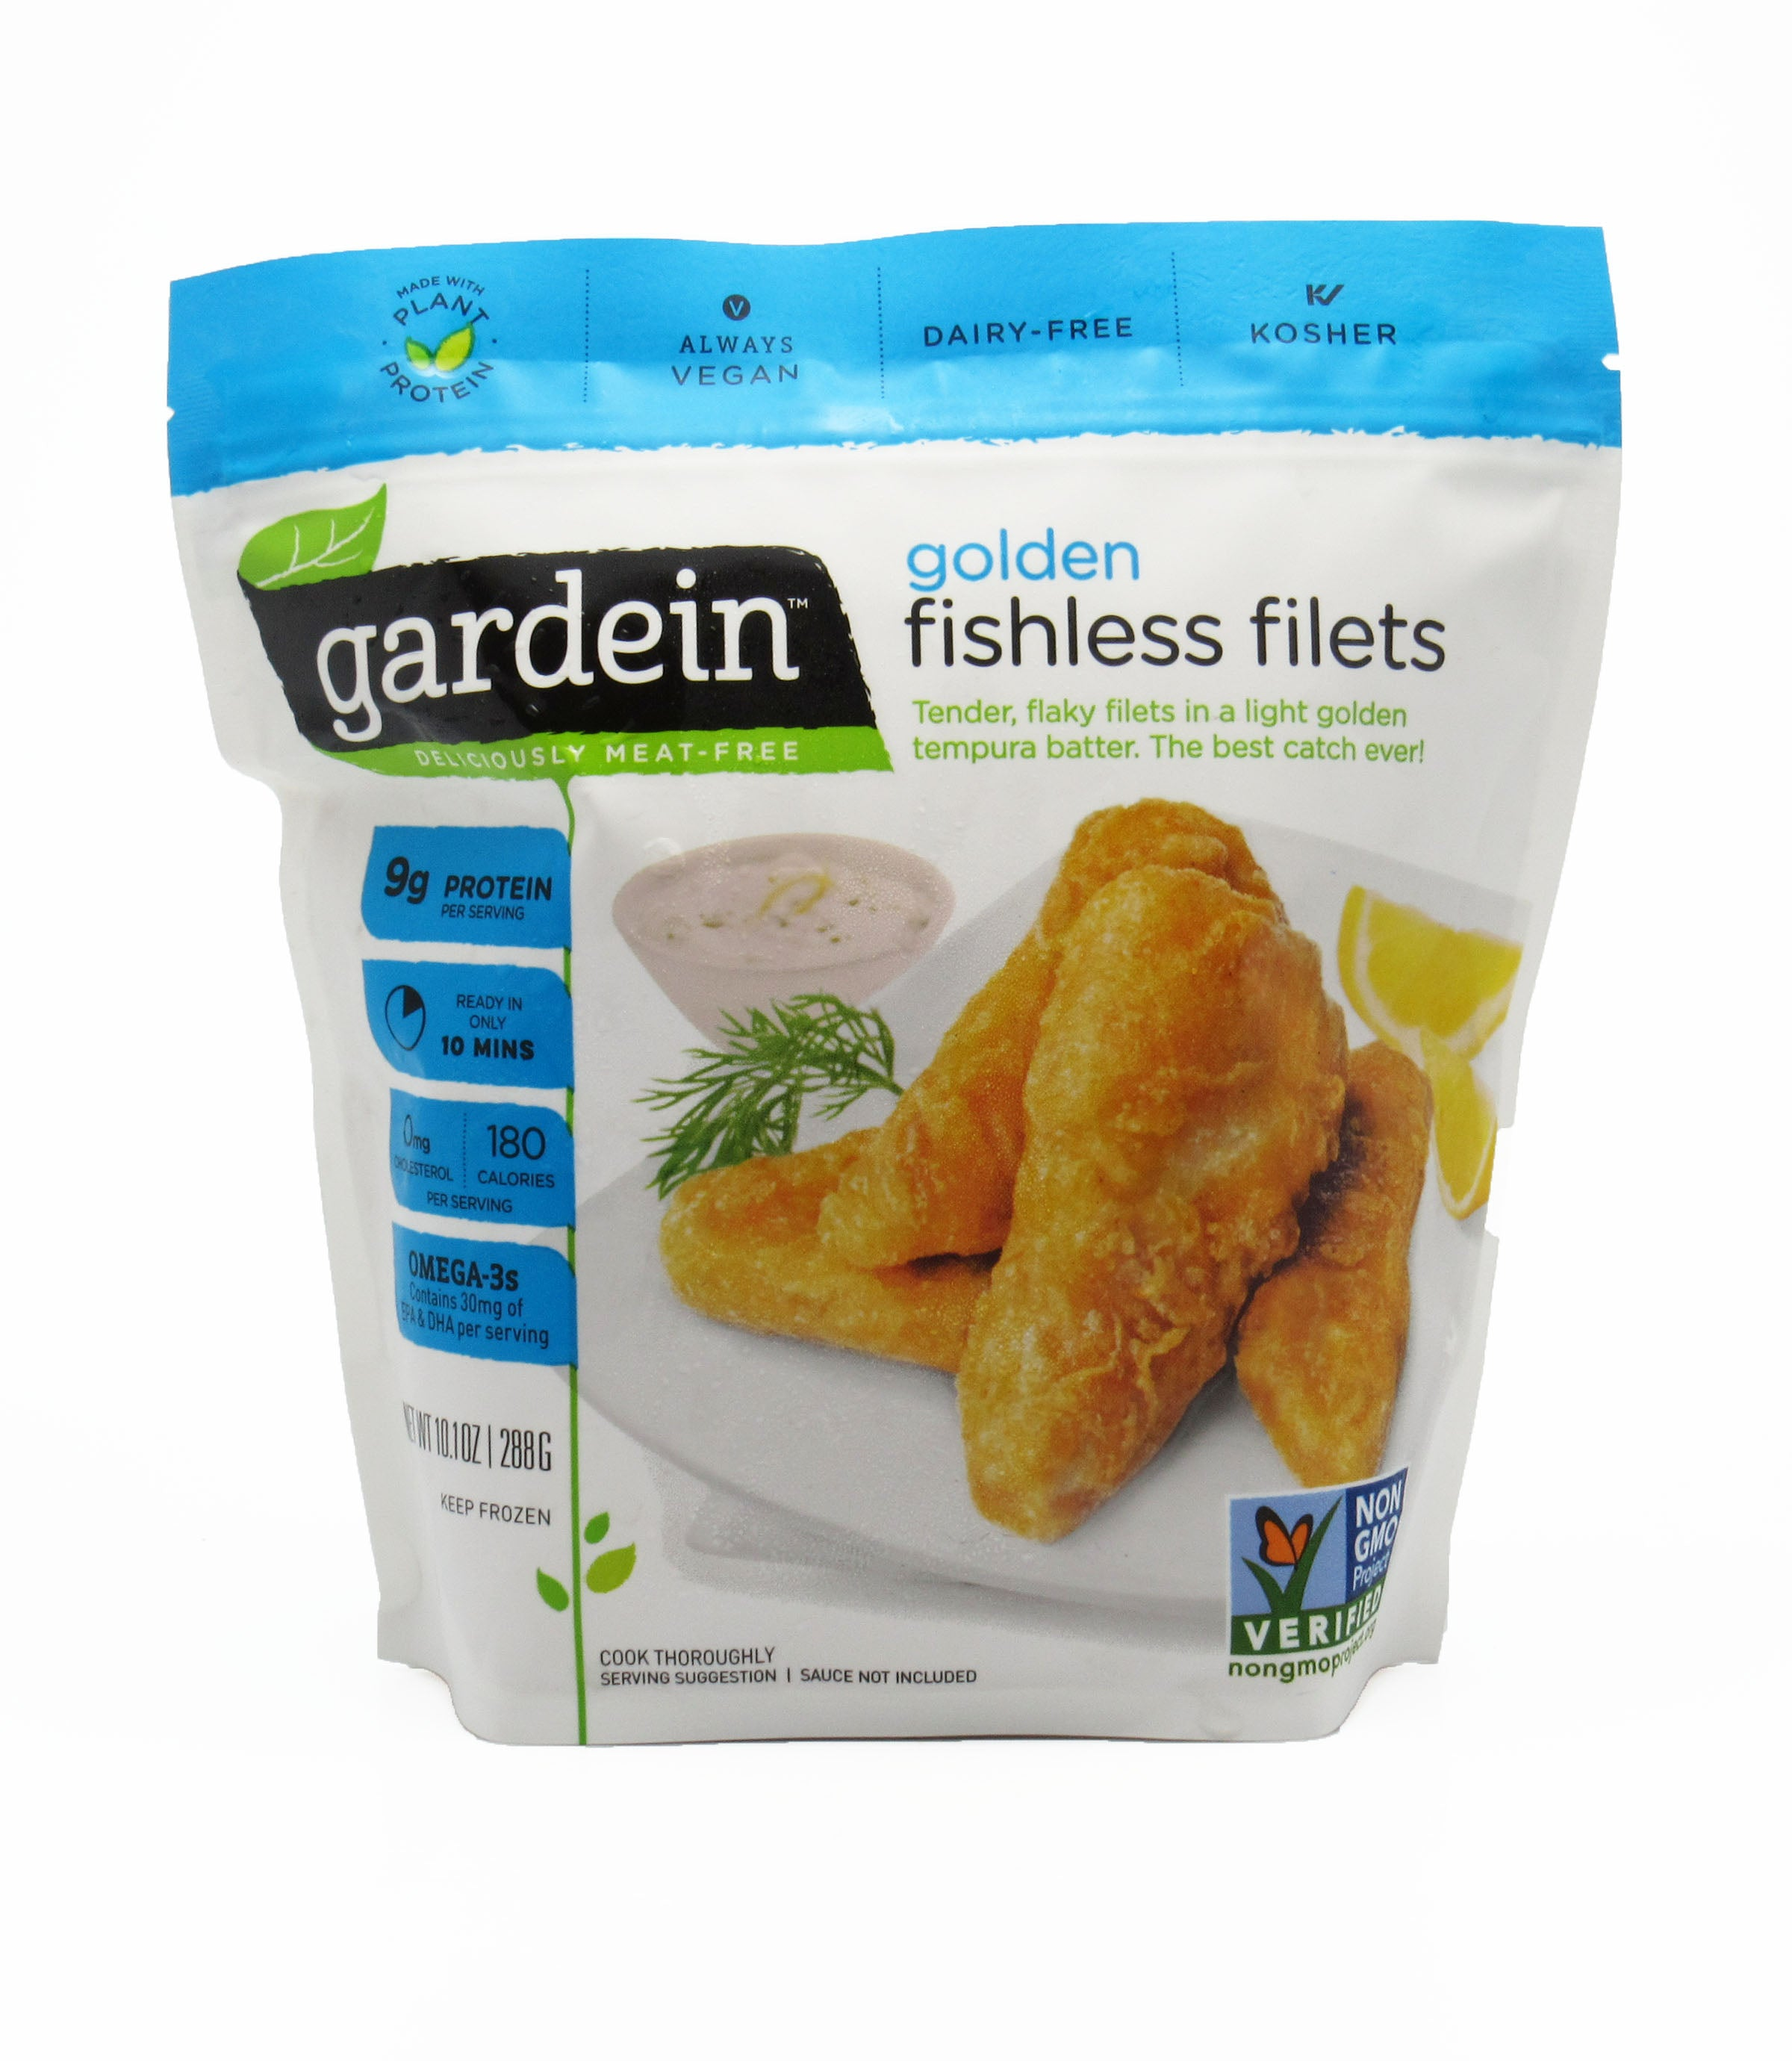 Filete de Pescado Vegetal 288gr (GARDEIN)